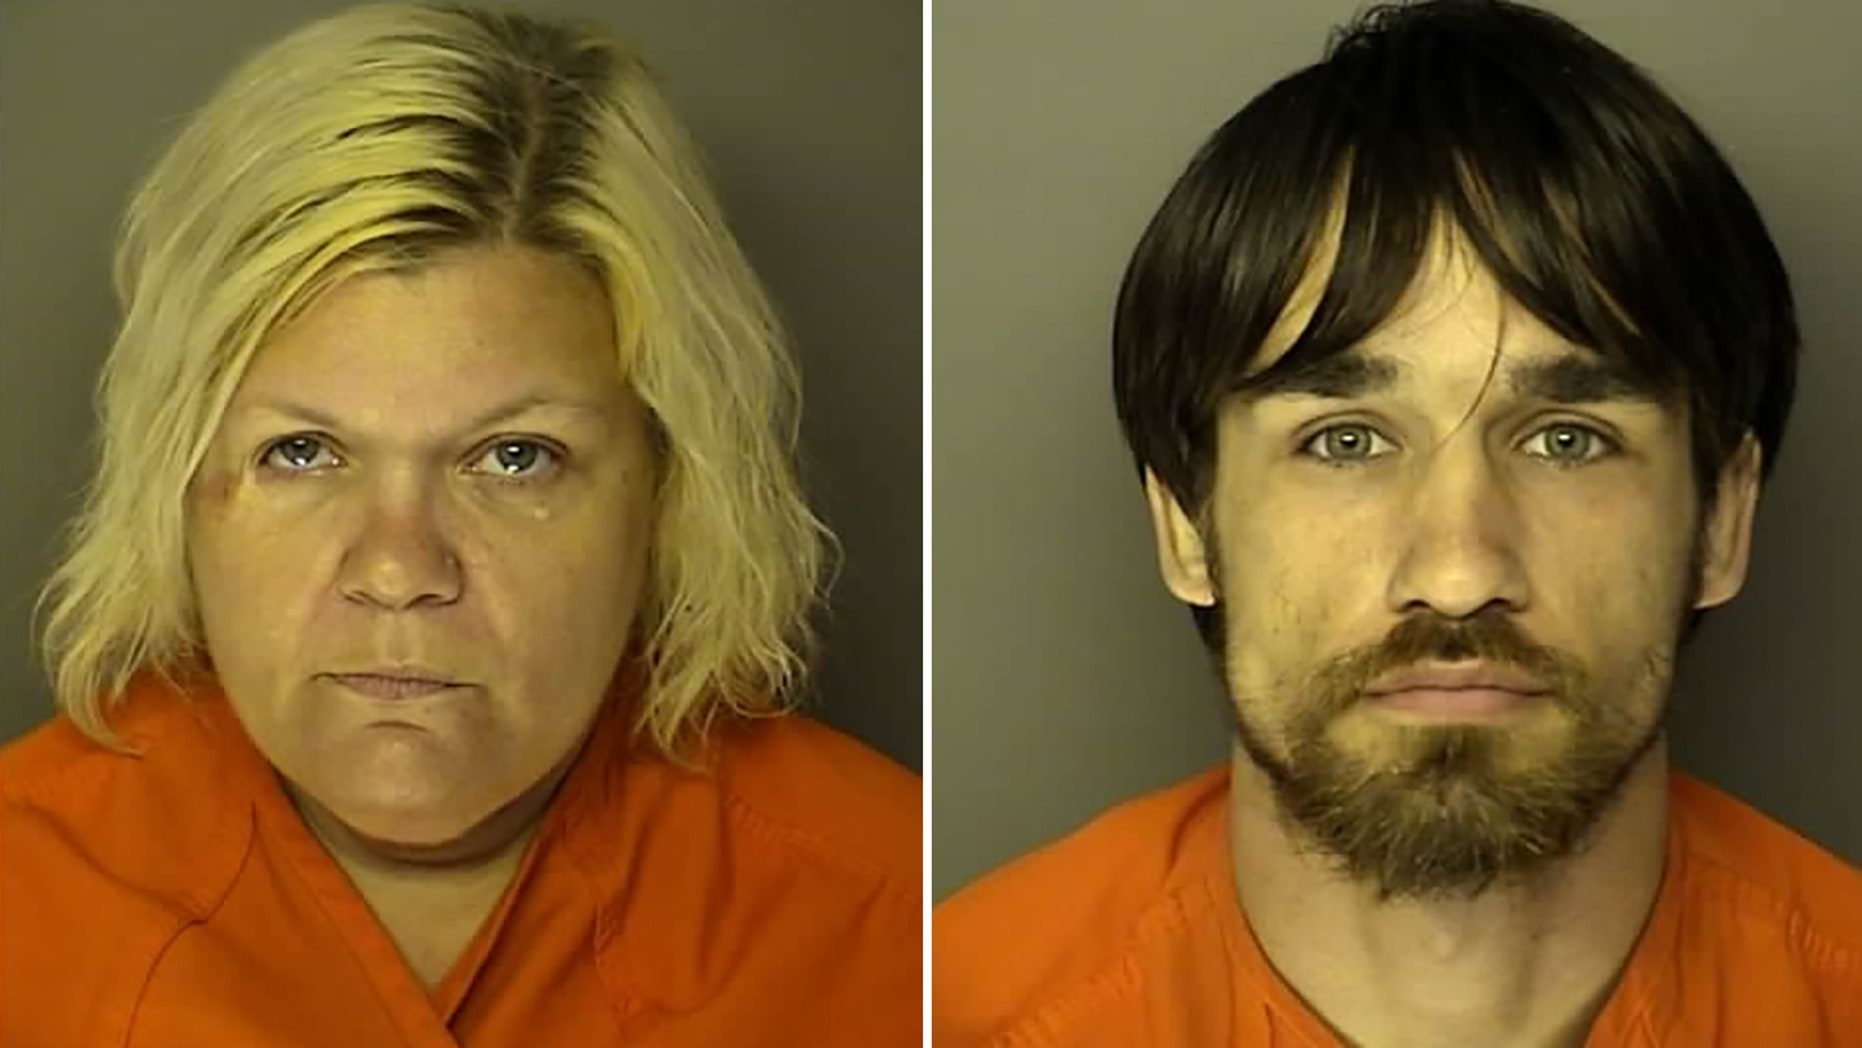 Jenny Lynn Paradis, 43, and Joshua Palmer Vaught, 22, were arrested Monday when Paradis' two children were found living in squalor, according to a police report.